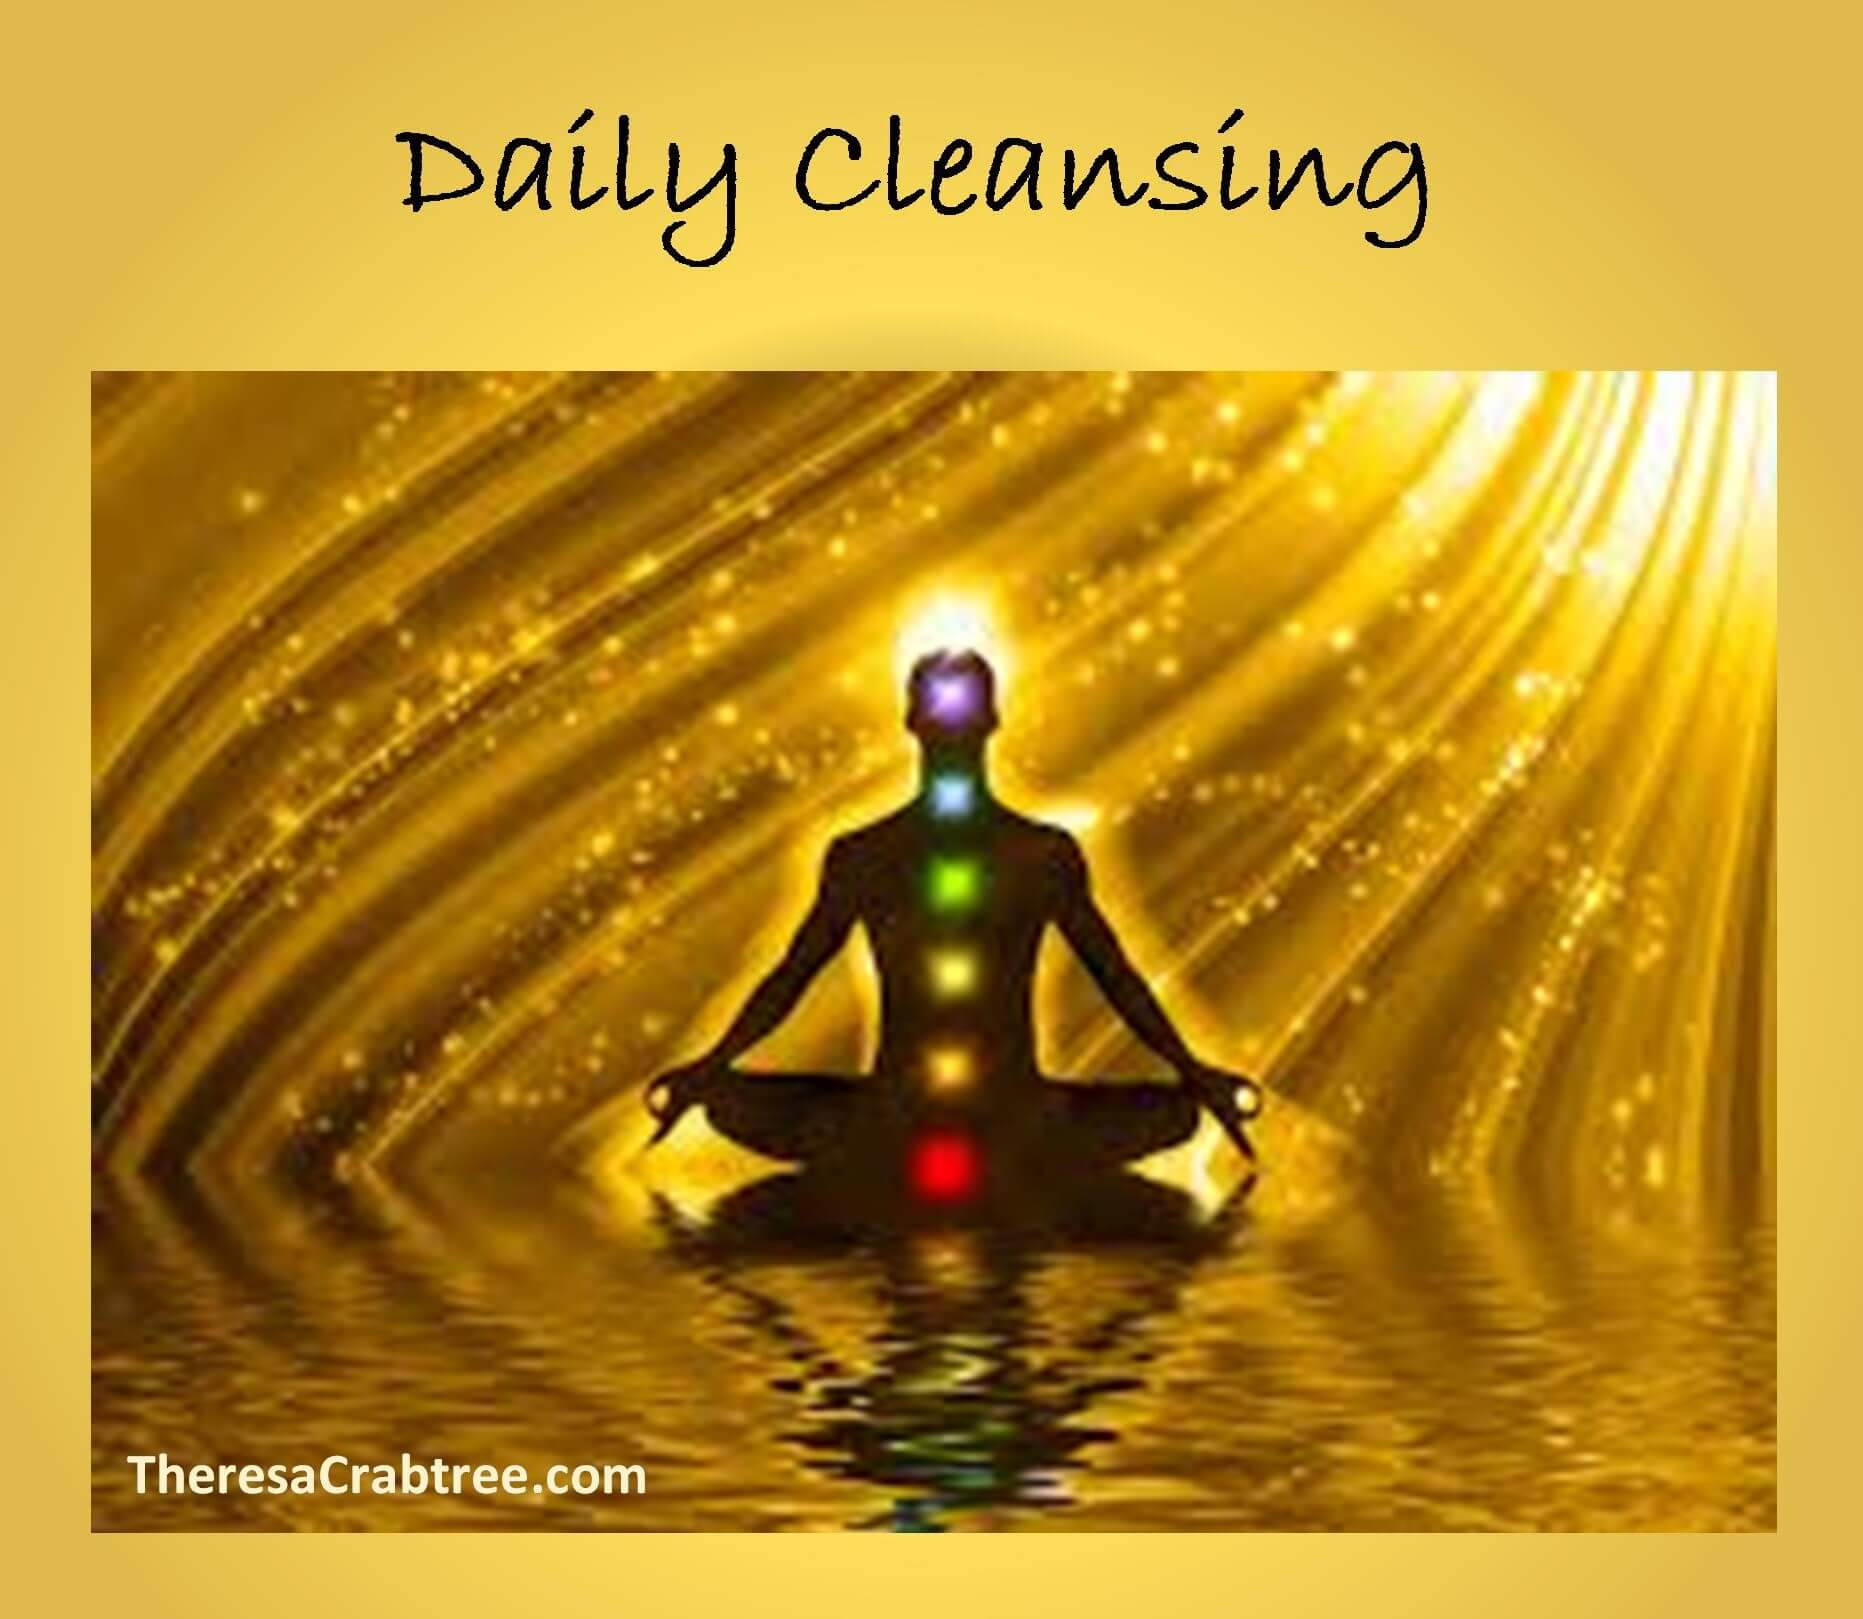 Daily Cleansing